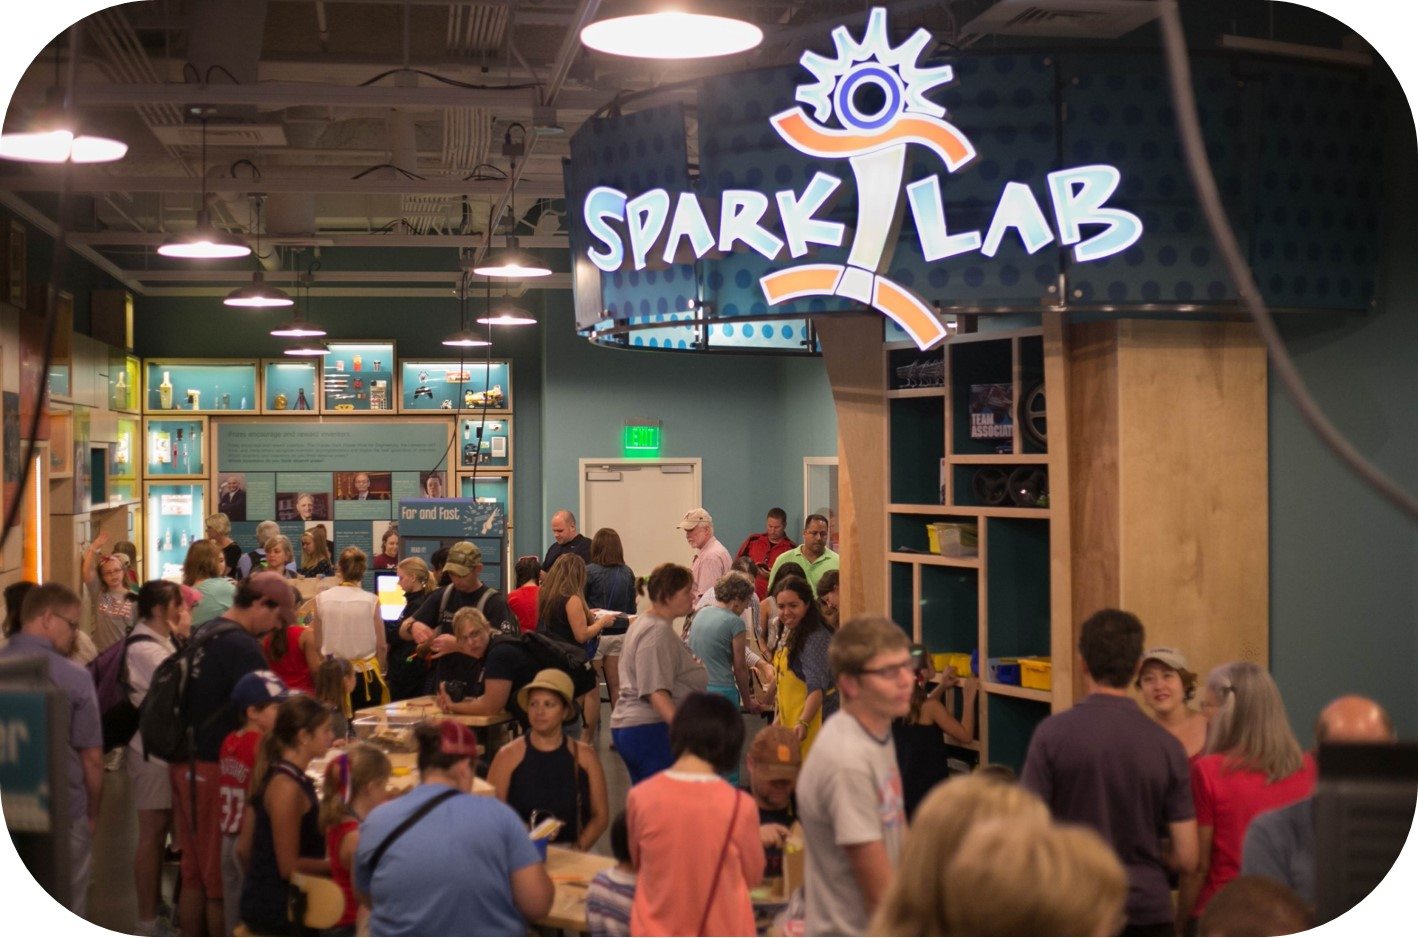 Spark!Lab full of visitors on opening day